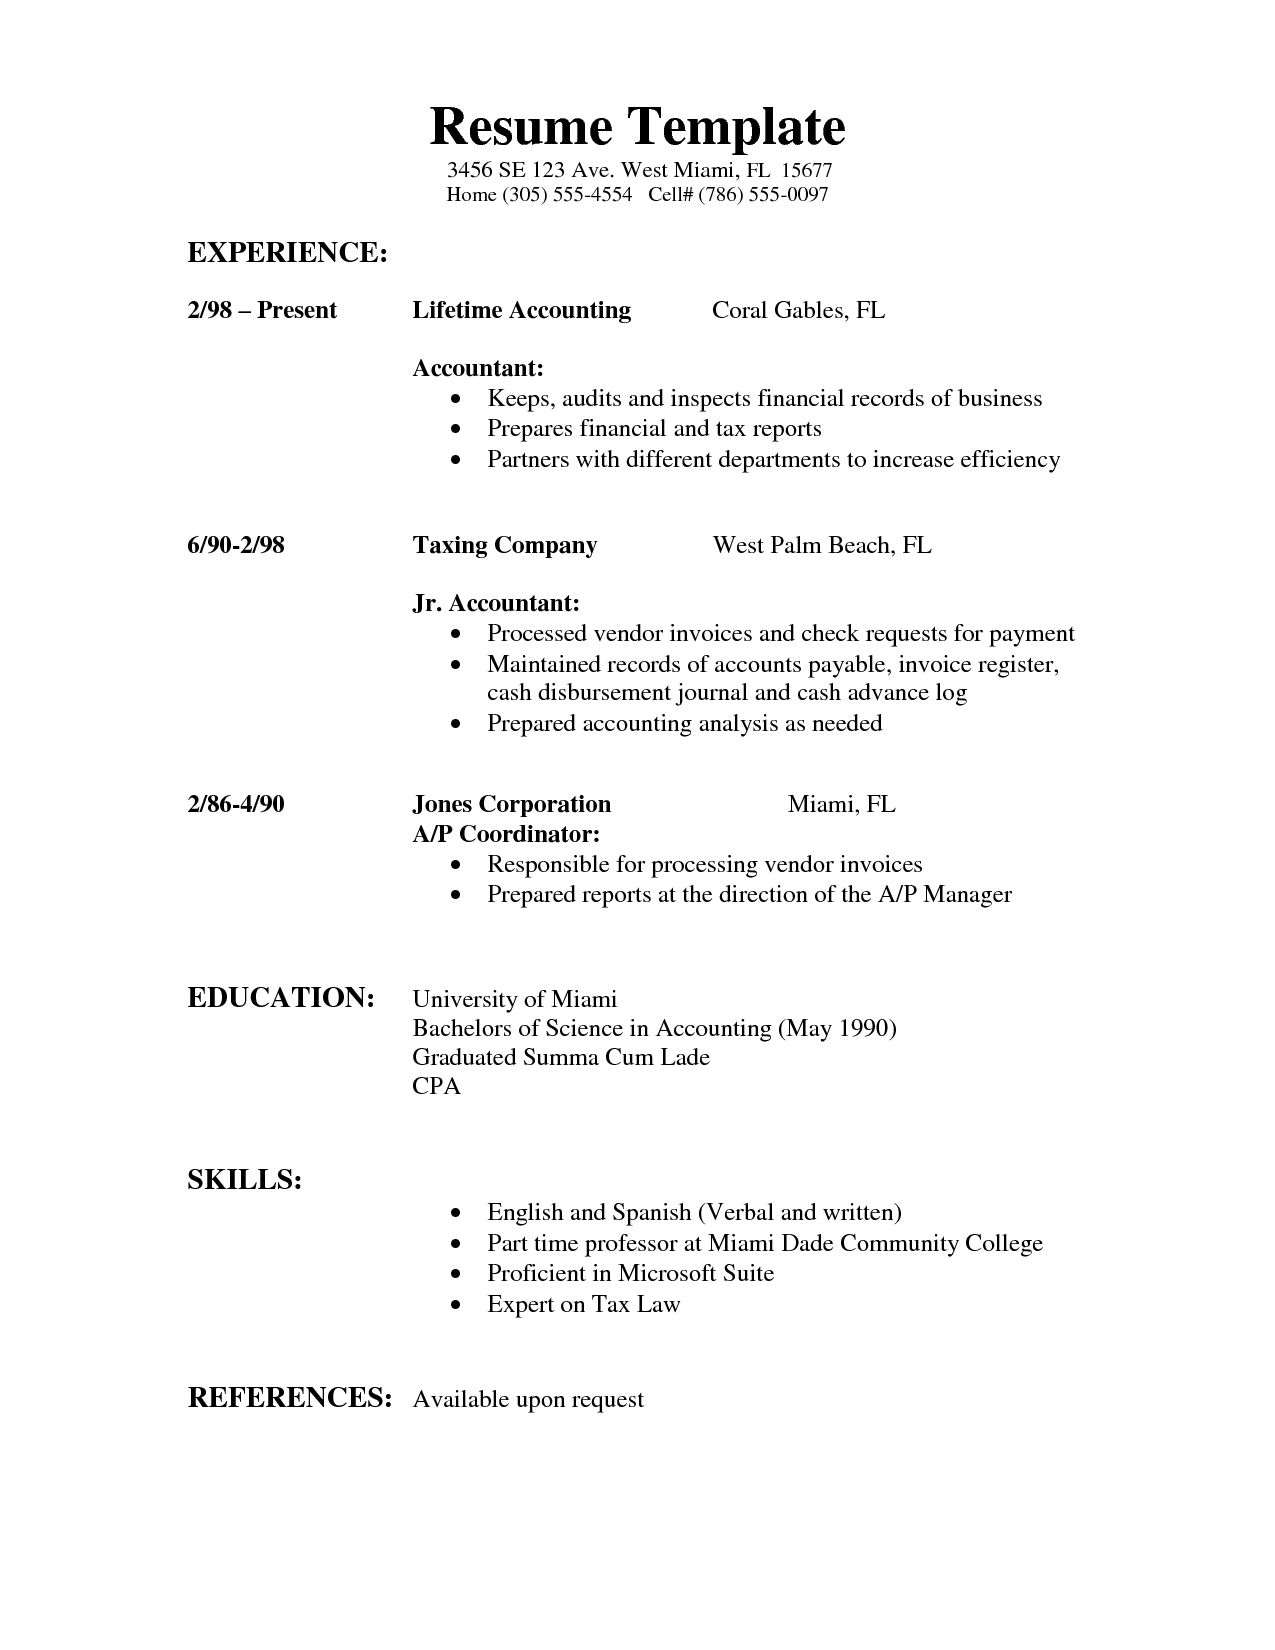 Simple Resume Format L Andr Resume Examples 3 Letter And Resume